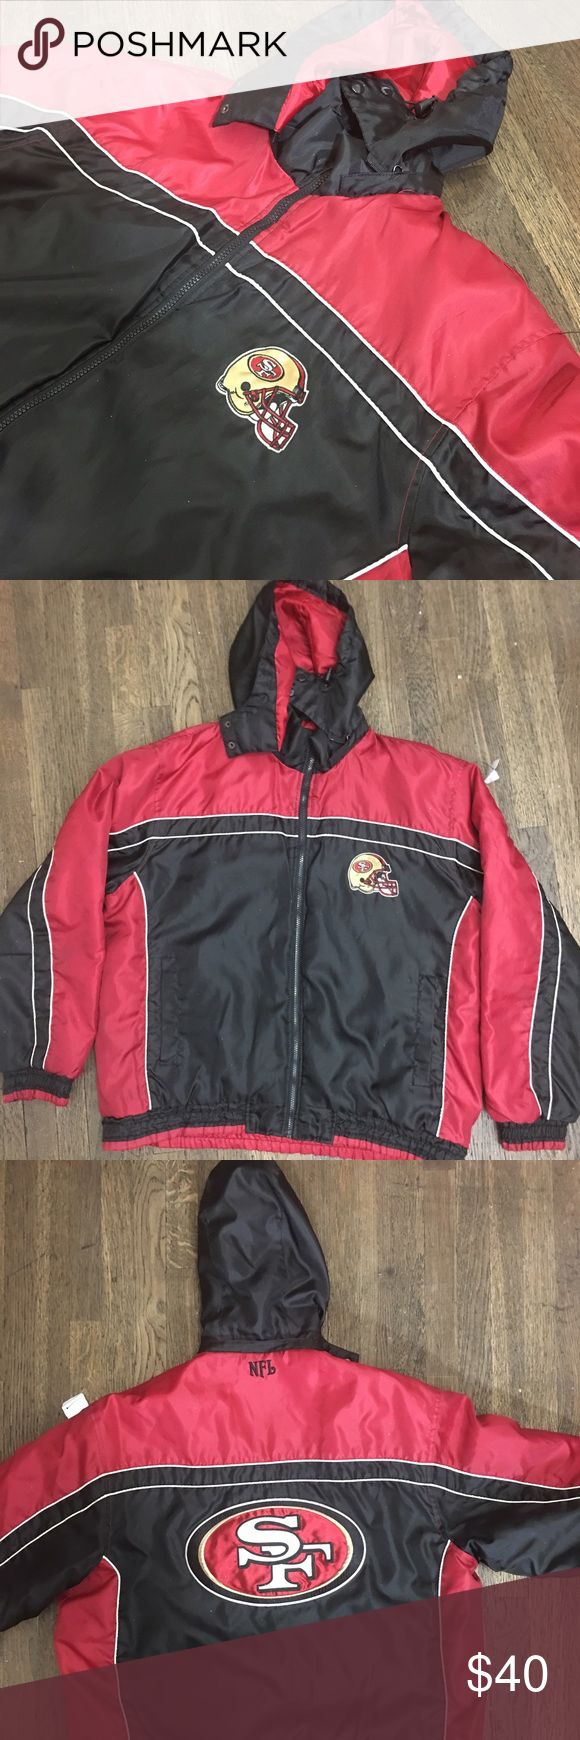 NFL 49ers Jacket Very nice NFL 49ers jacket size Large. Helmet patch on front and big patch on back. Hood is removable too. No rips, holes, or stains. Very clean piece. $40 NFL Jackets & Coats Bomber & Varsity